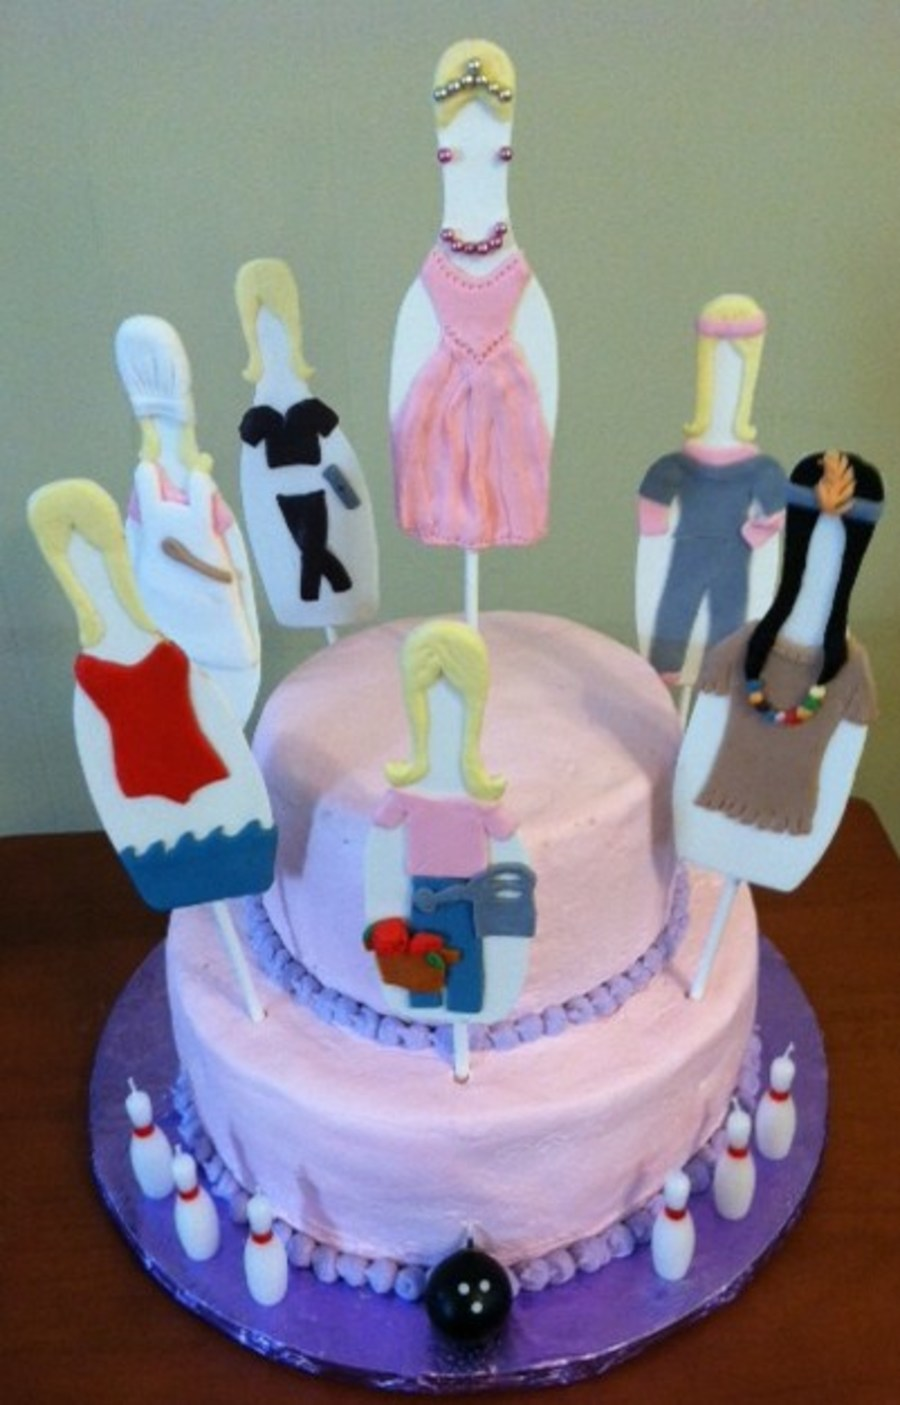 Bowling Pin People on Cake Central